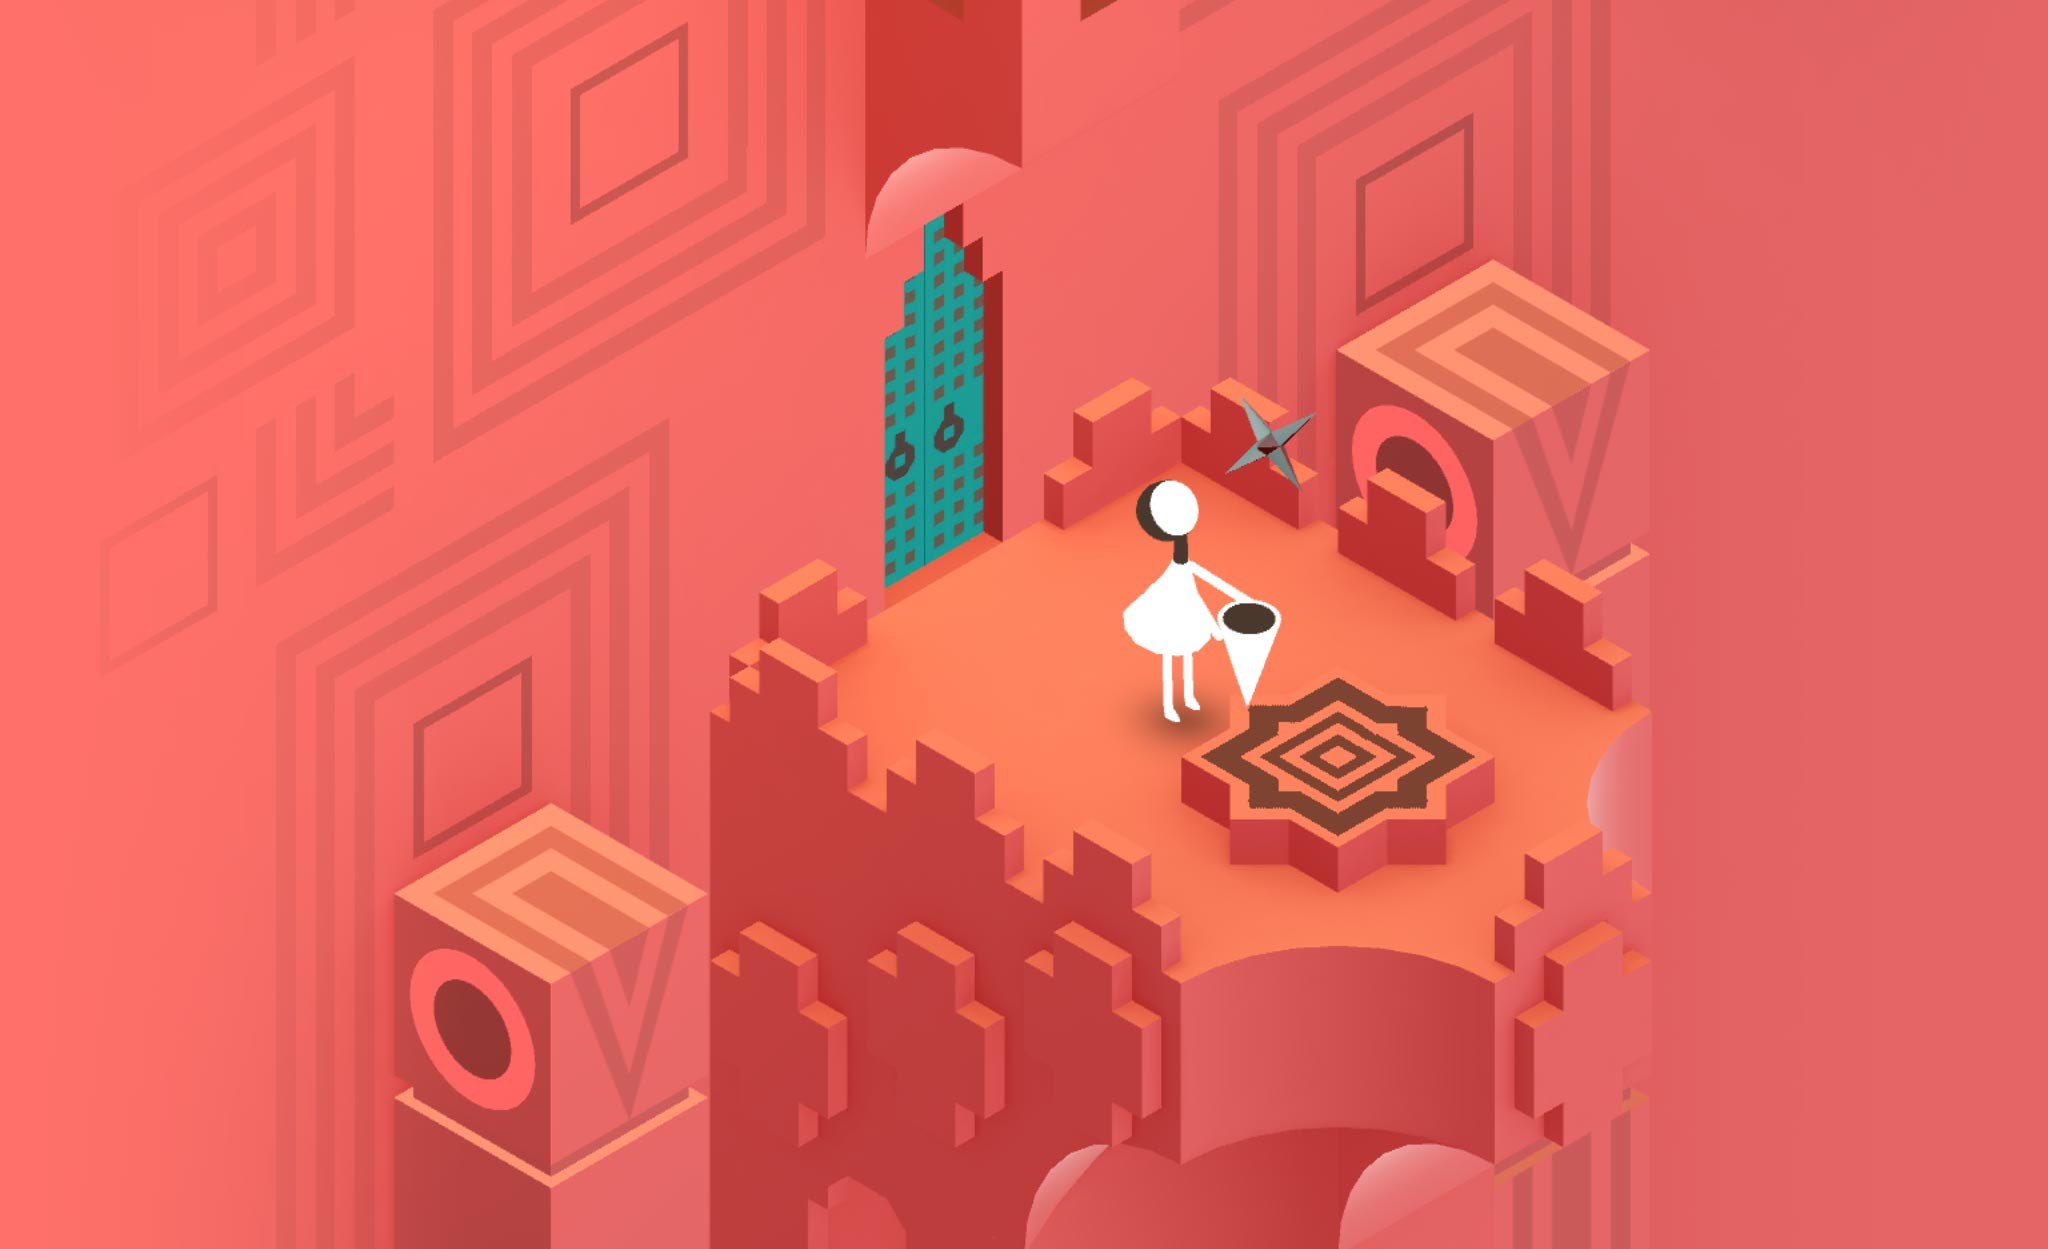 A colorful puzzle set within the astounding Monument Valley 2.